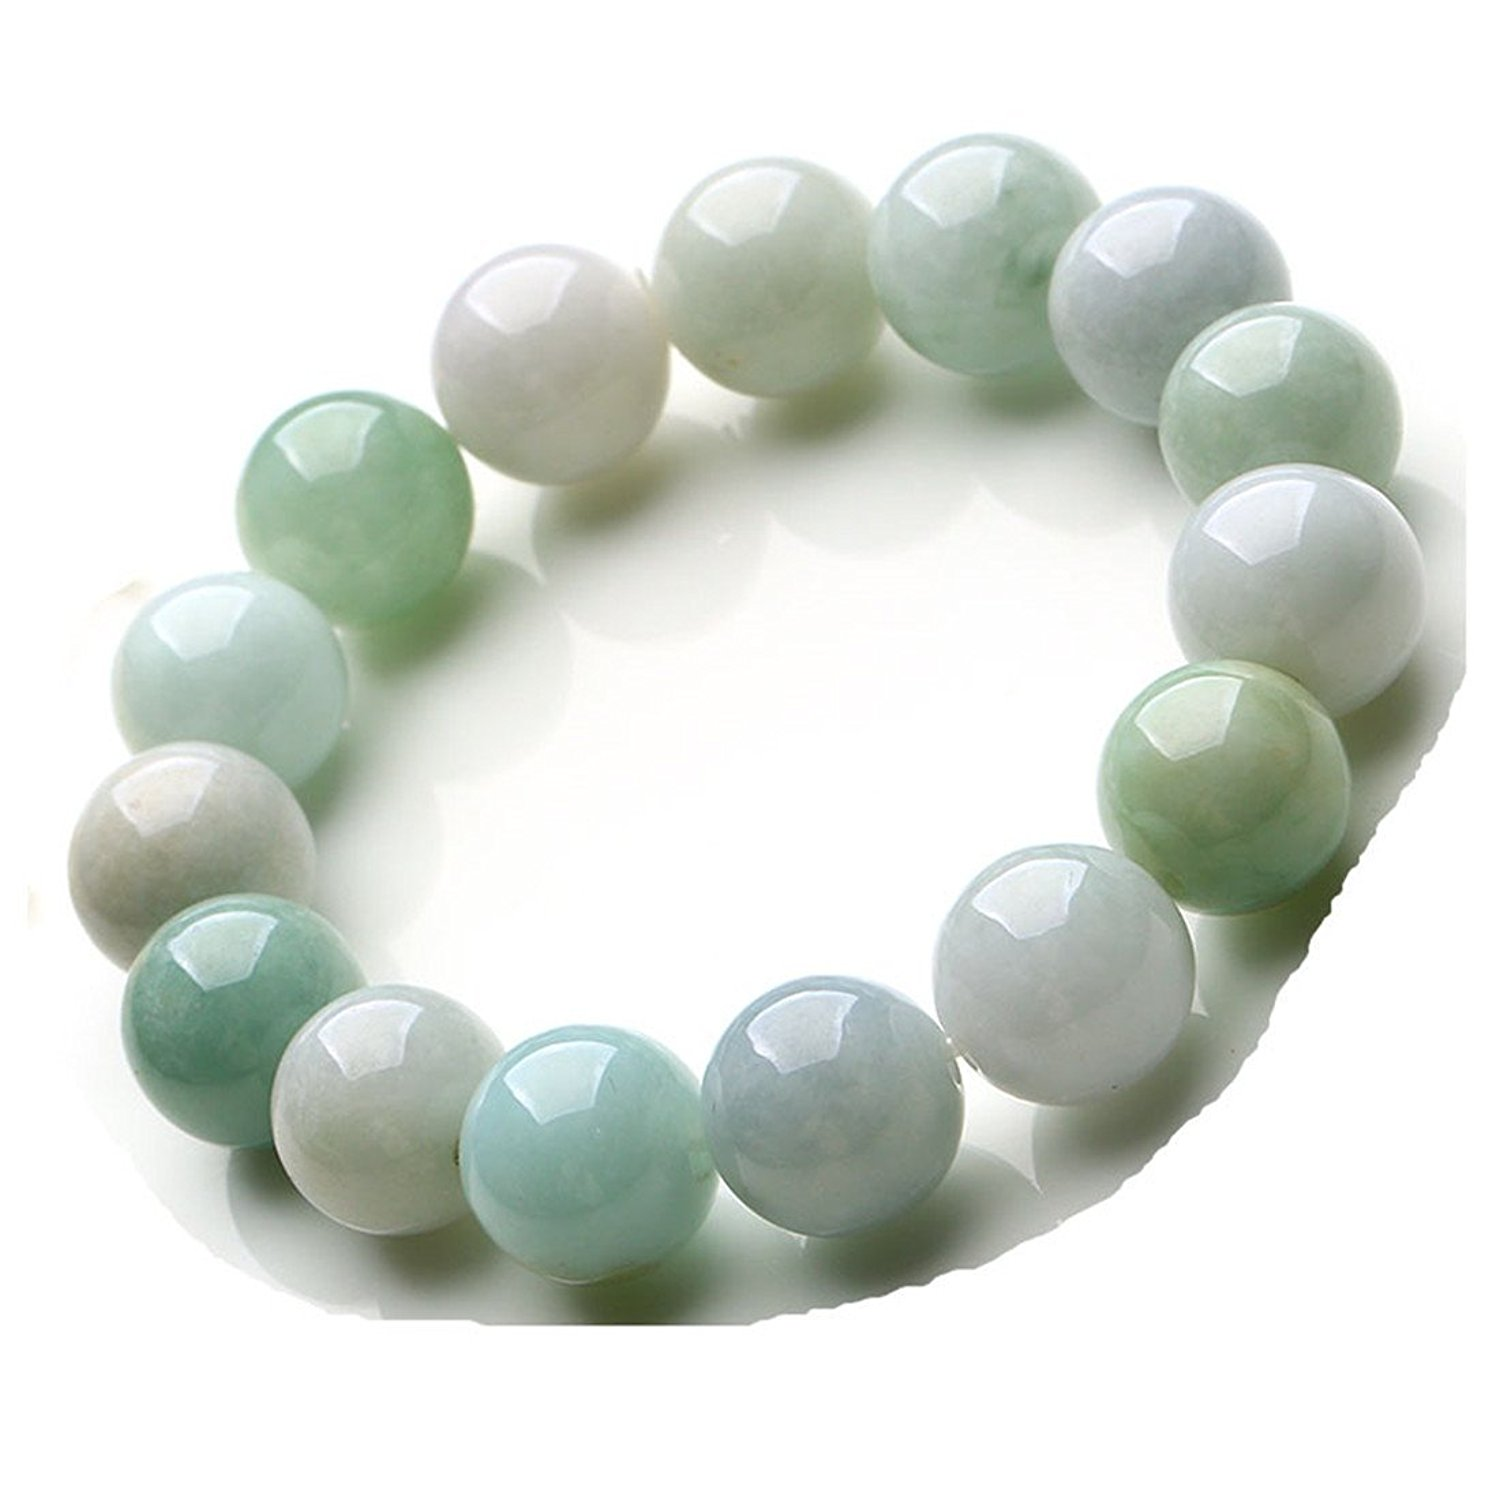 bead bracelet turquoise beads jewelry stretch bling for az making gemstone yp wholesale